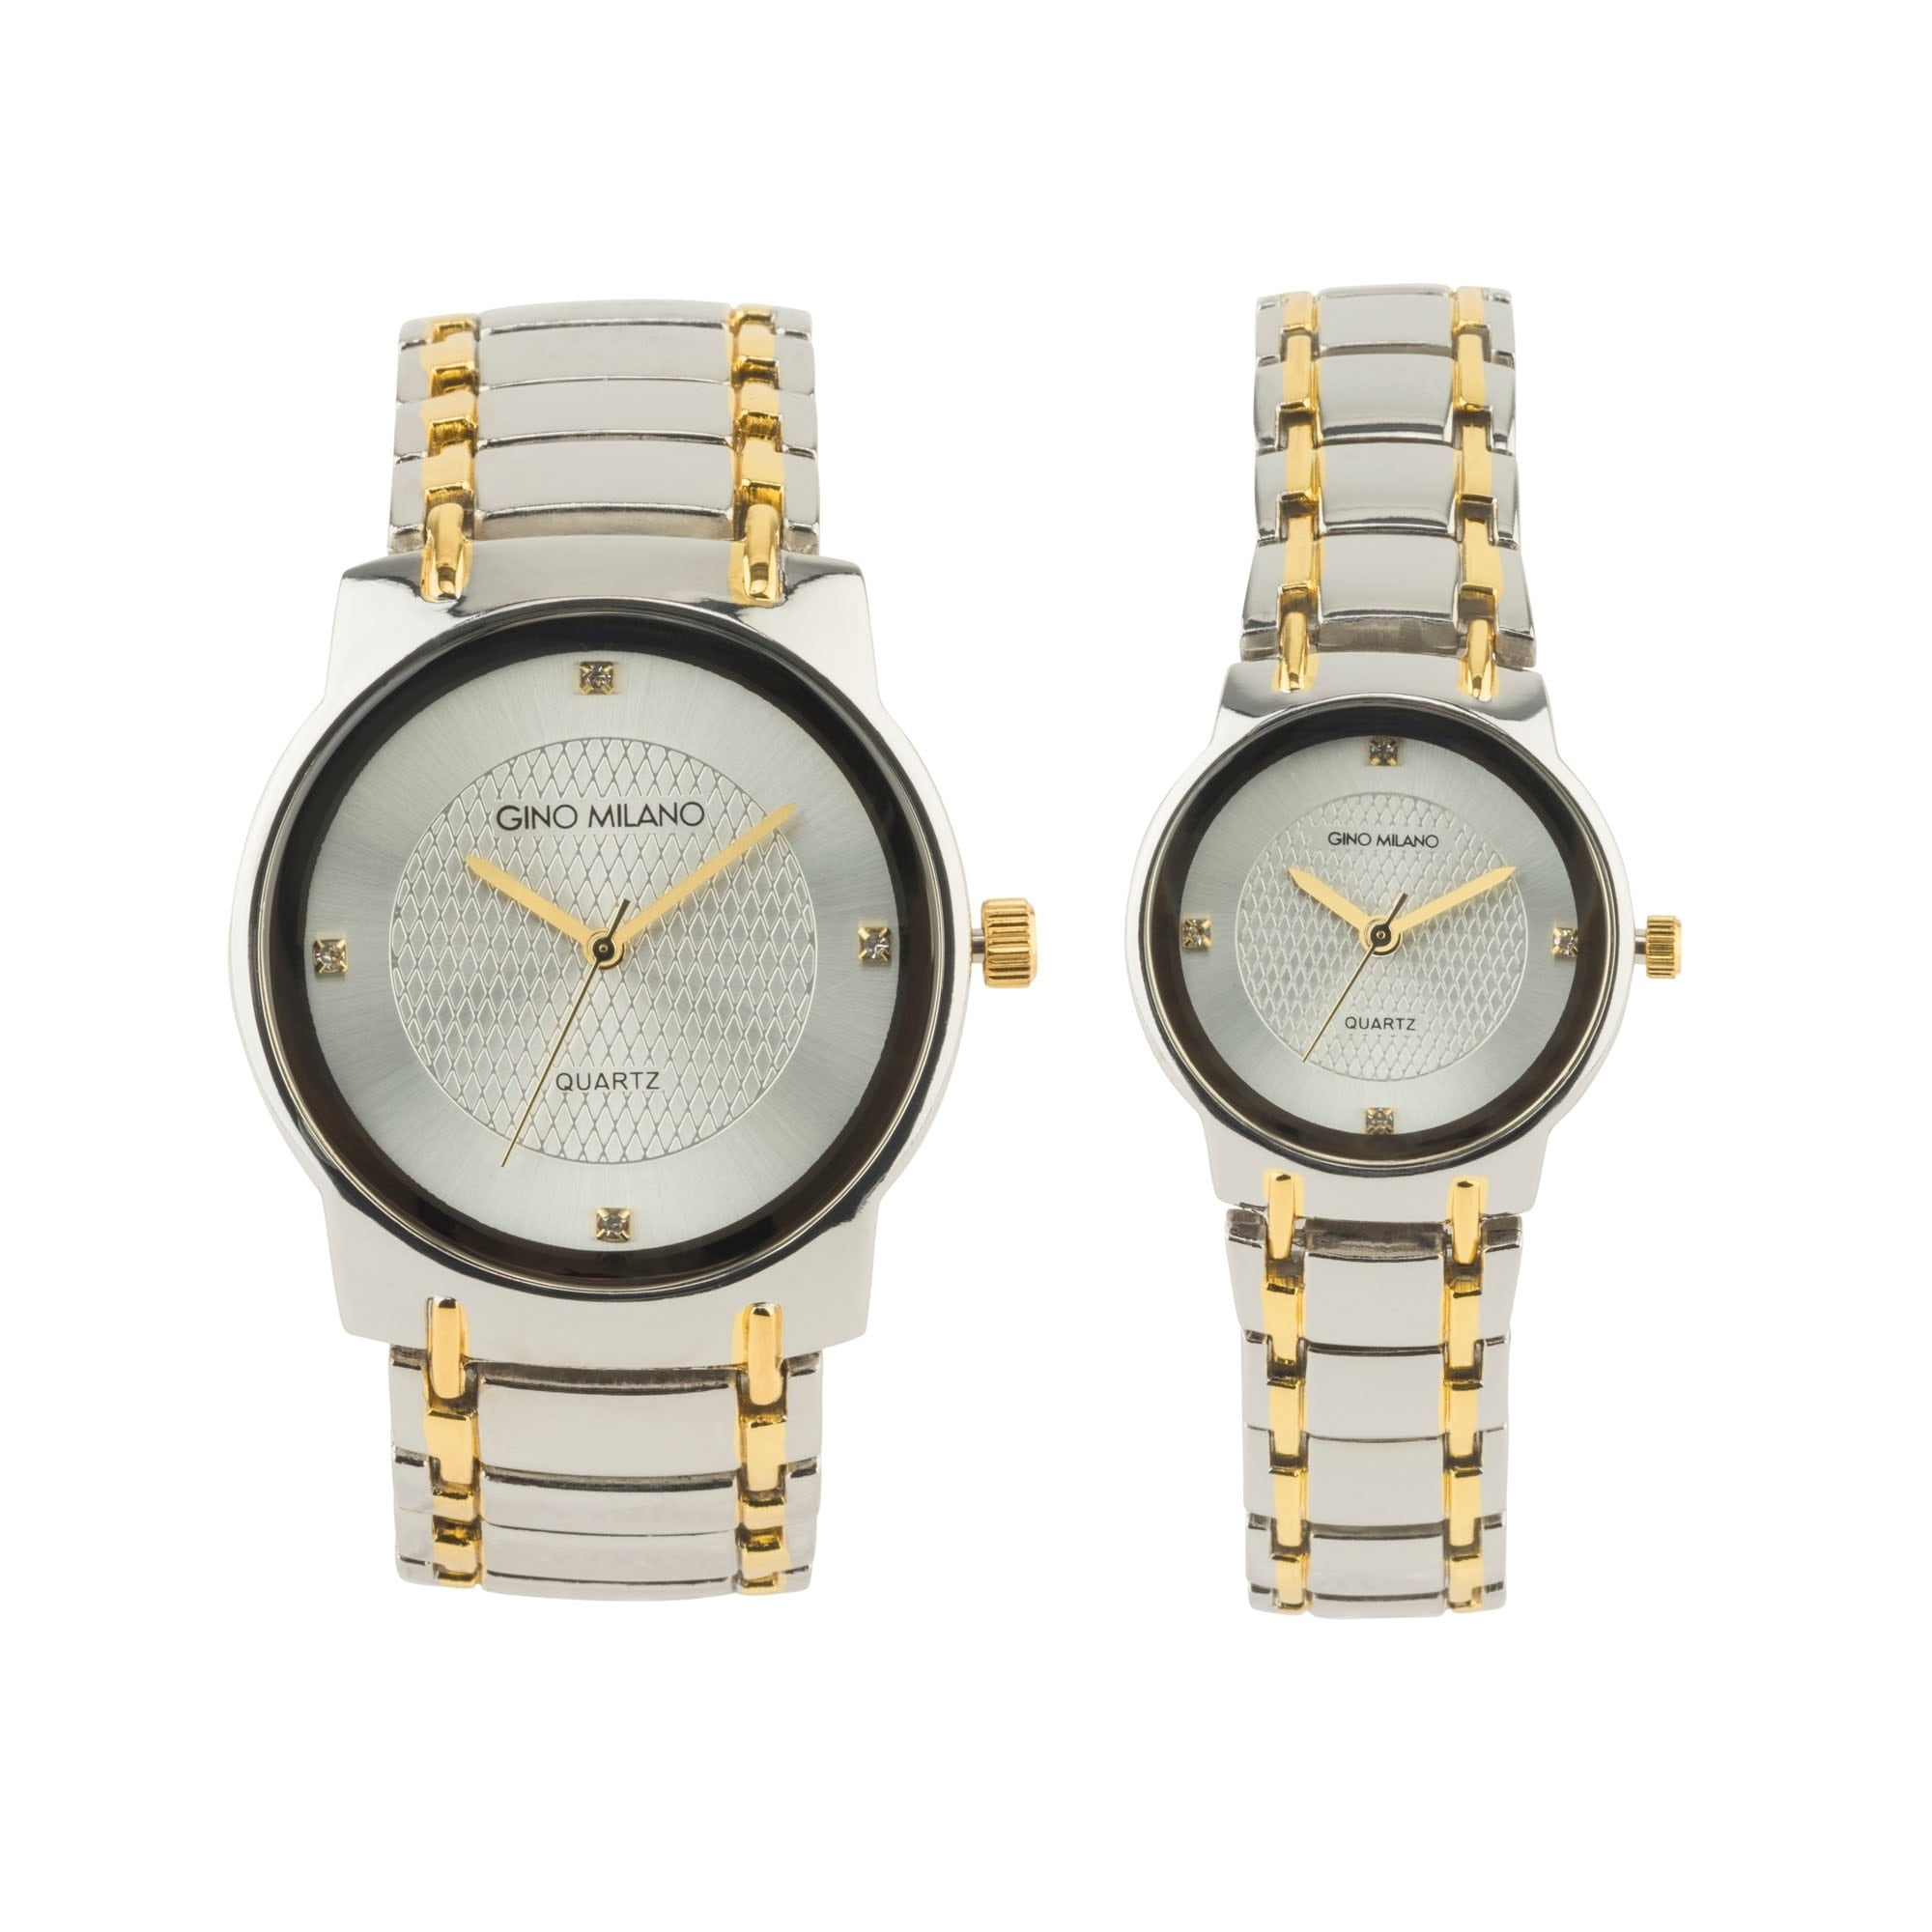 His And Hers Watch Sets >> Shop Gino Milano His Her Watch Gift Sets Free Shipping On Orders